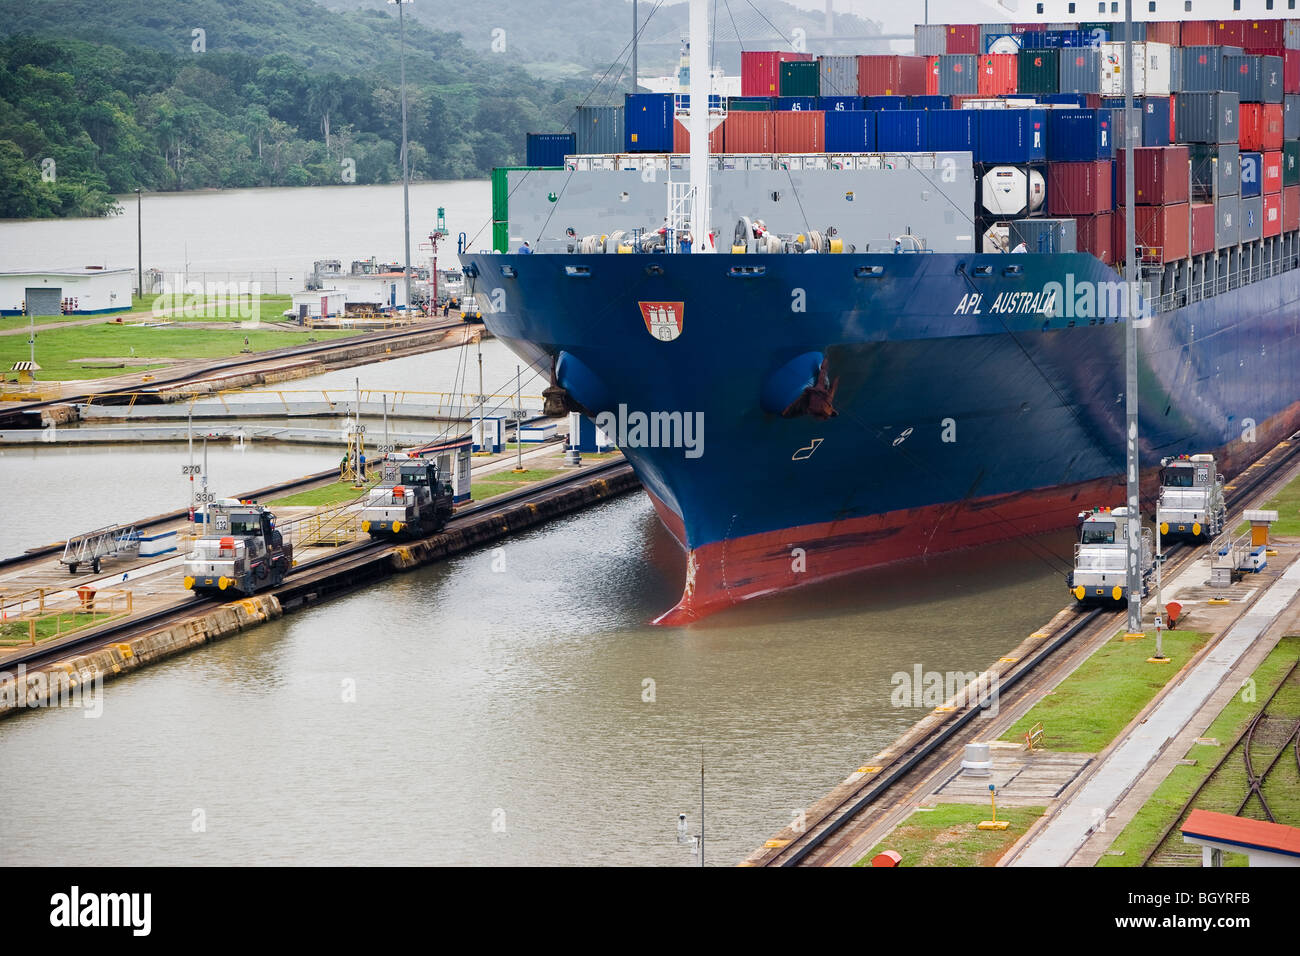 Cargo ship entering the Panama Canal at Miraflores Locks, Panama City, Central America - Stock Image